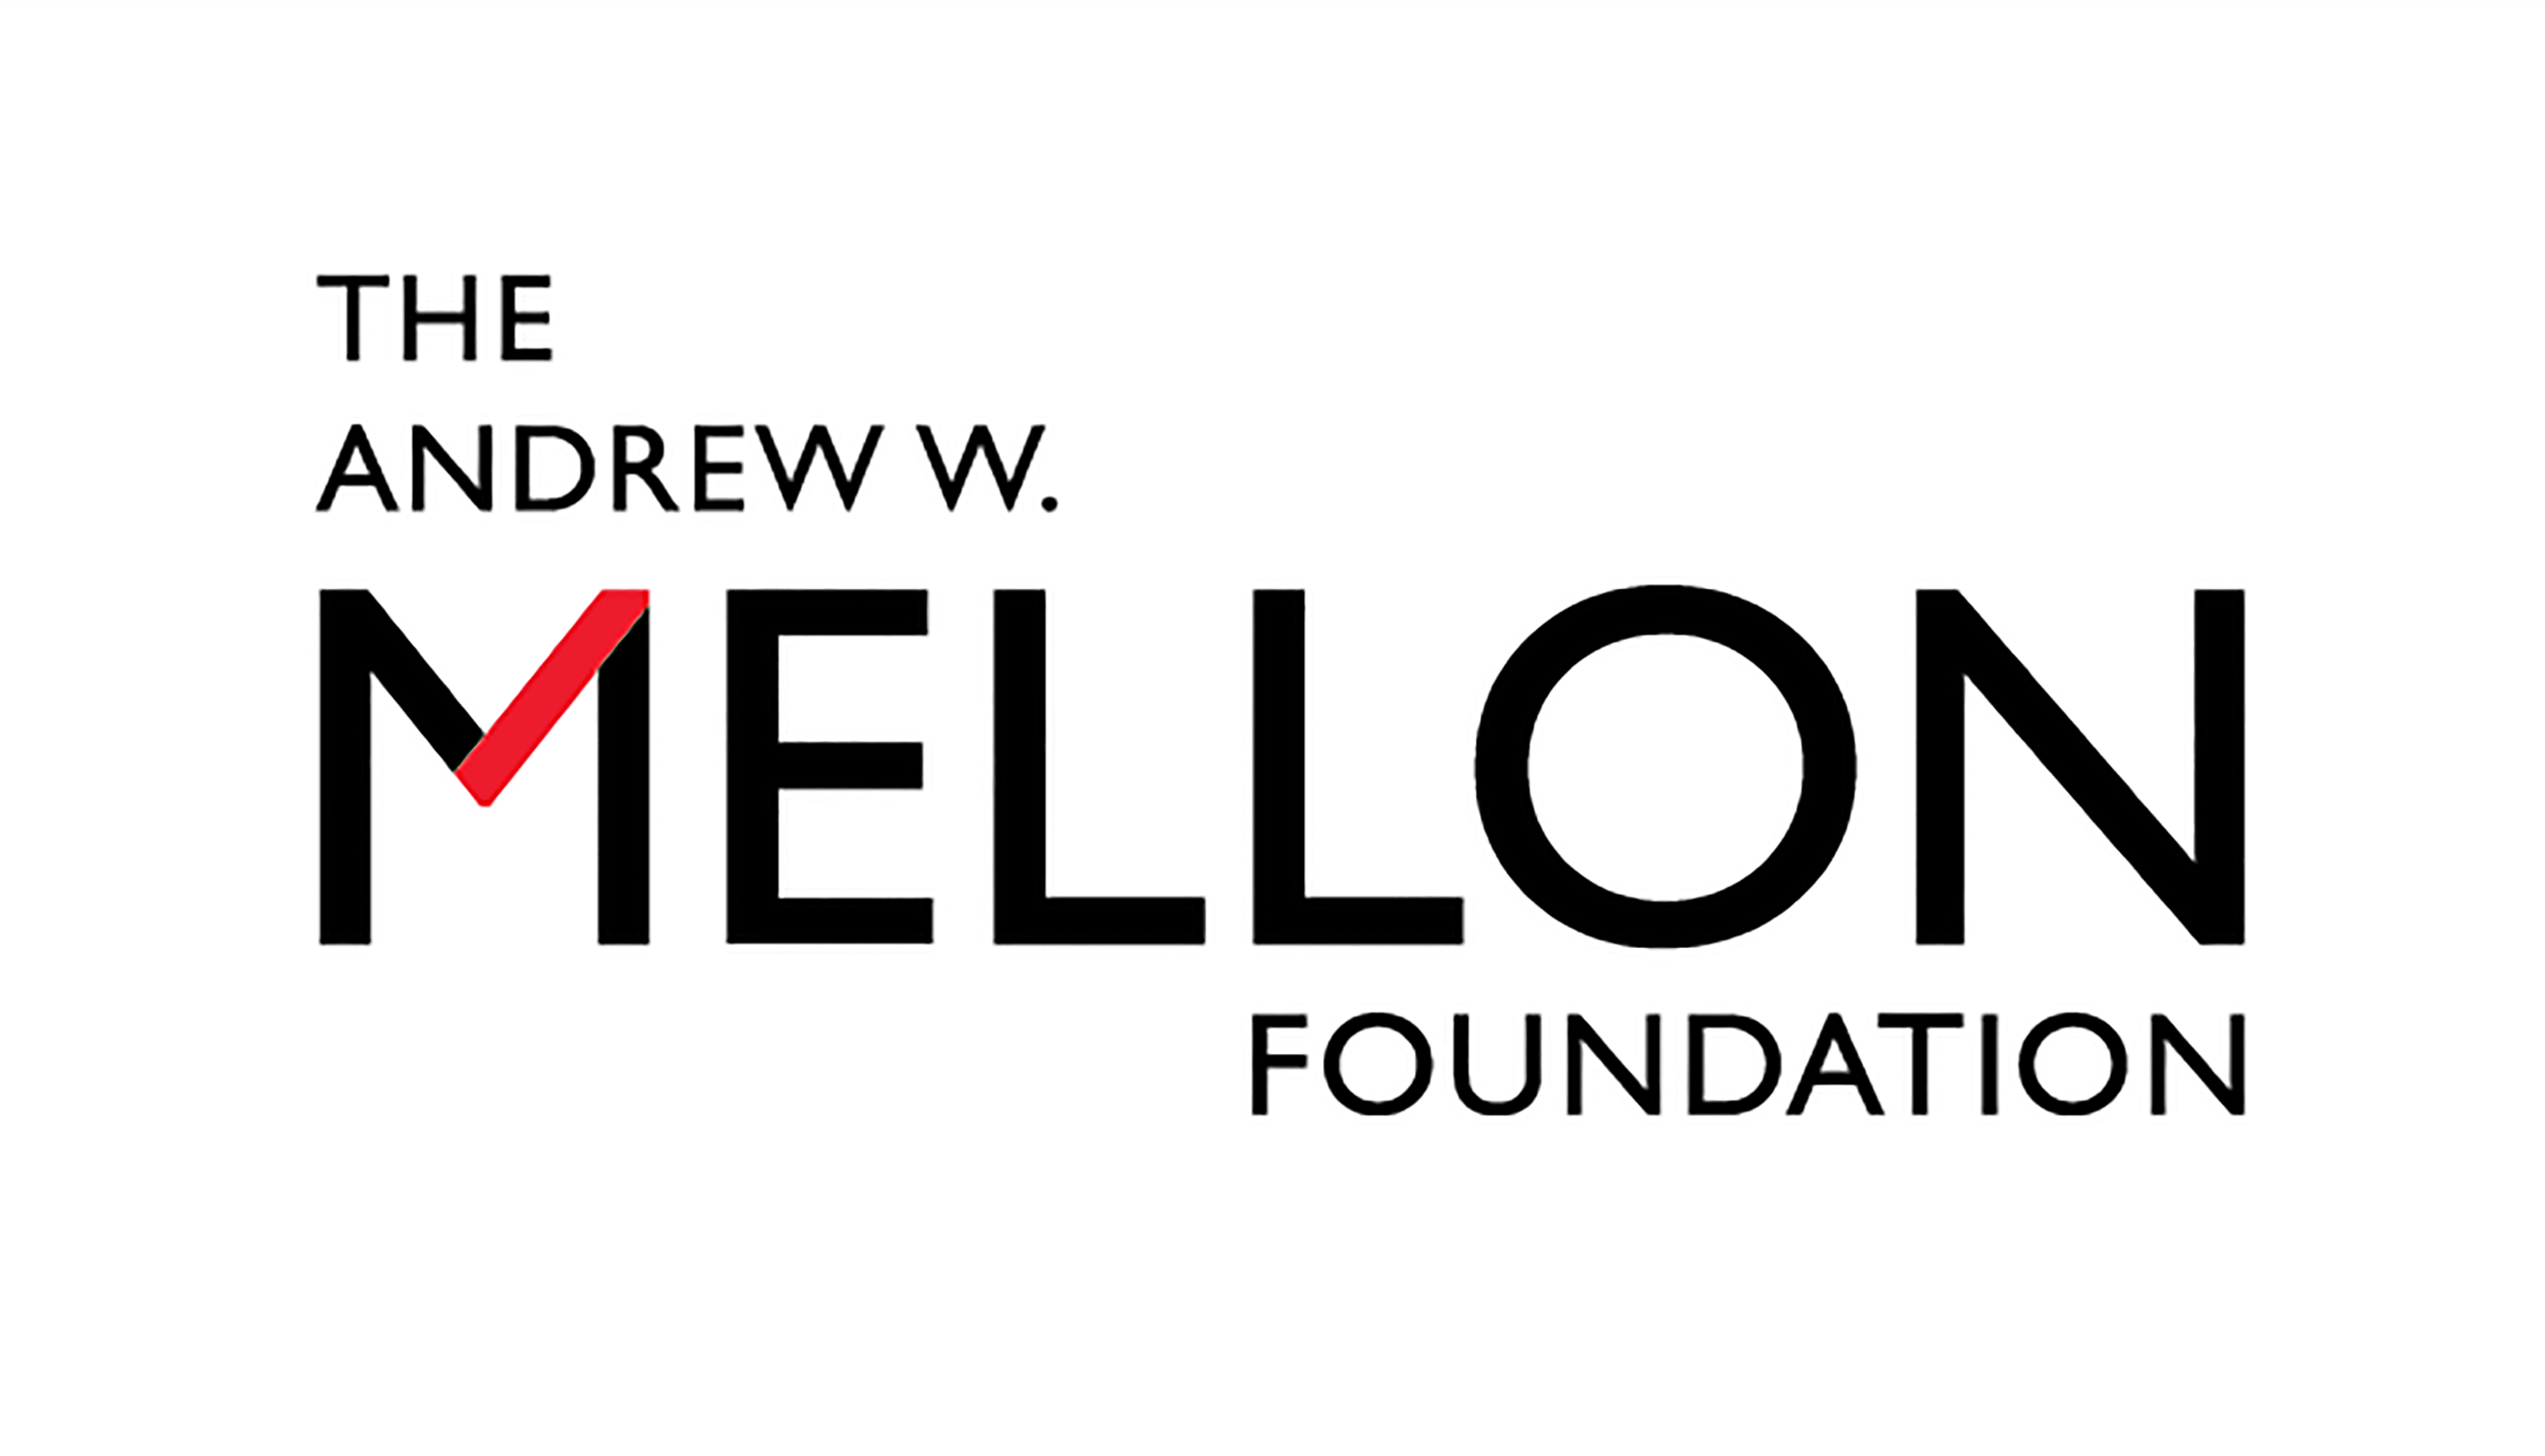 Andrew W. Mellon Foundation